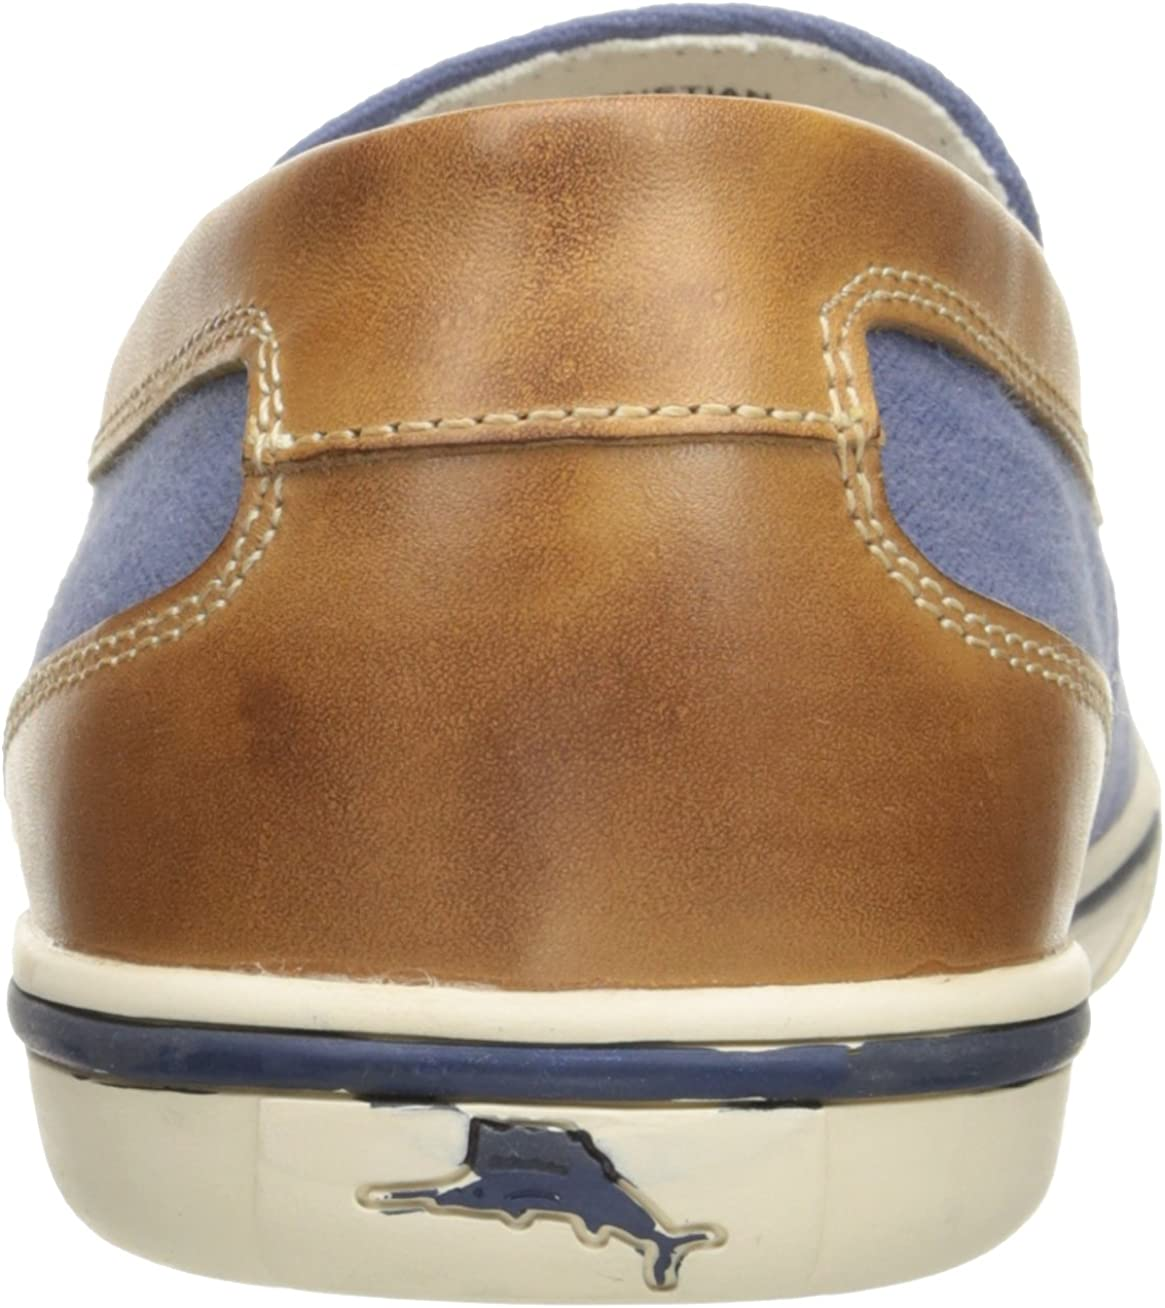 Tommy Bahama Mens Calderon Venetian Slip-on Loafer